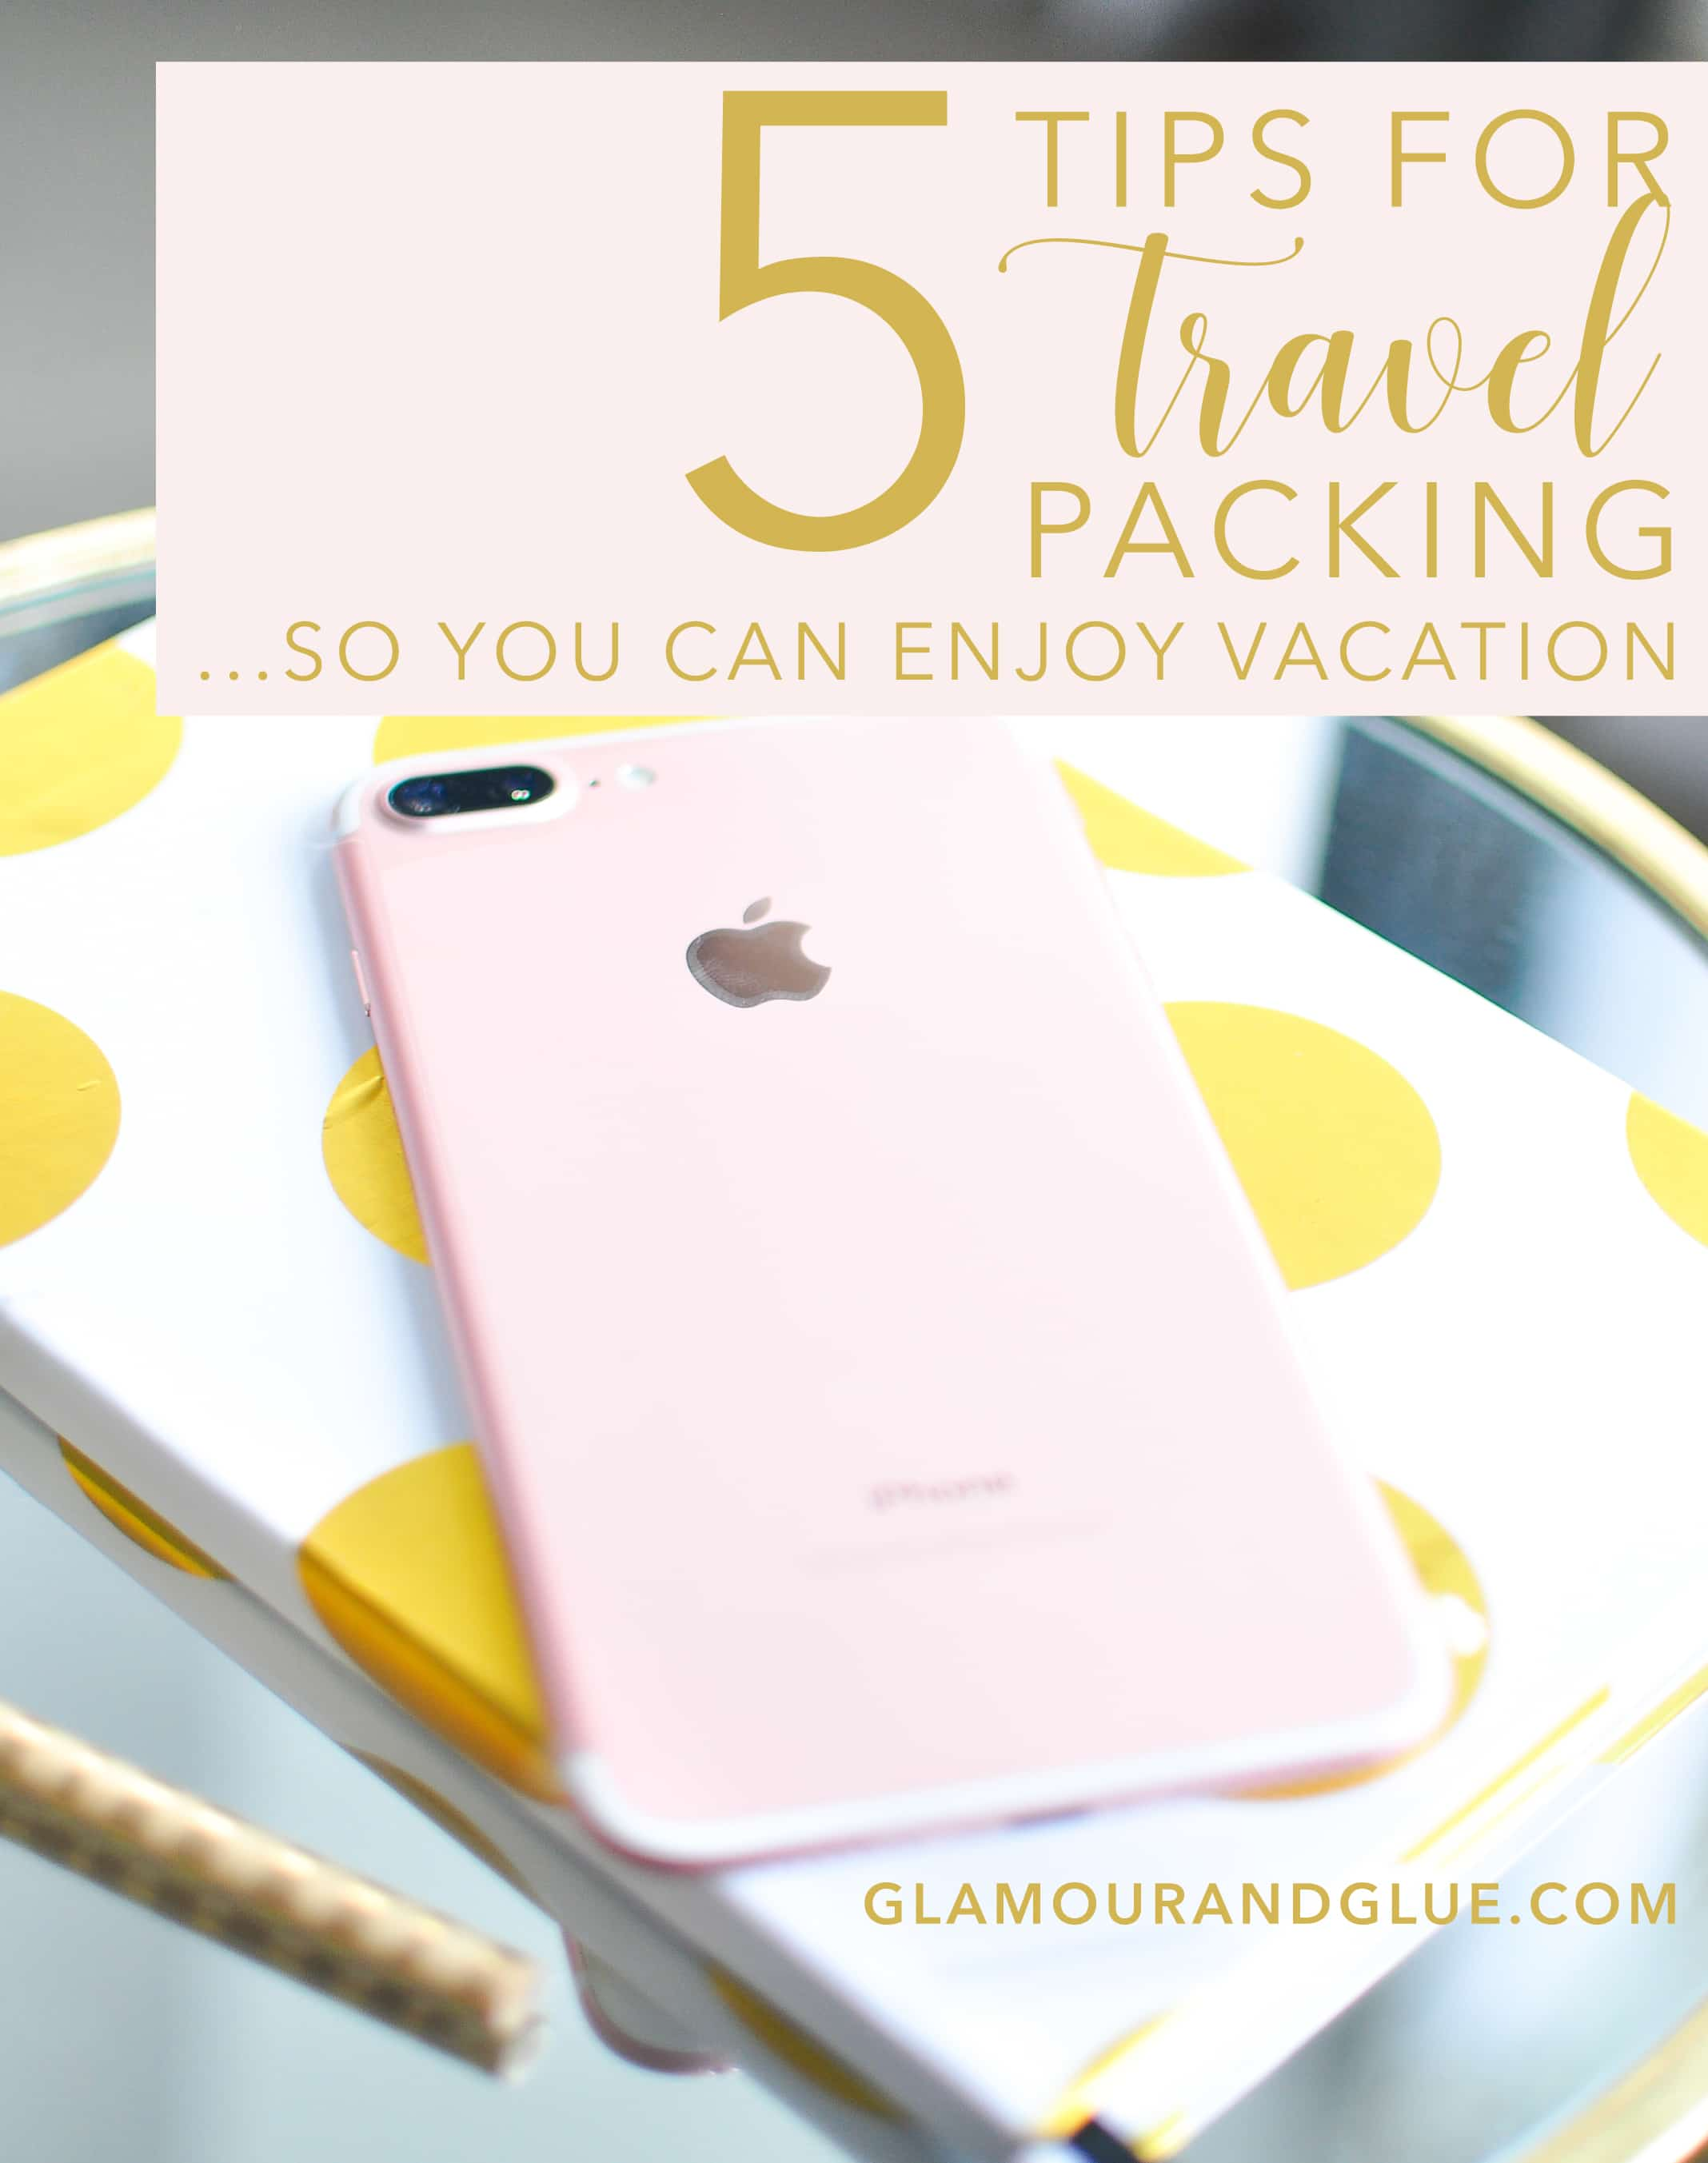 5 Tips for Travel Packing   So You Can Enjoy Vacation